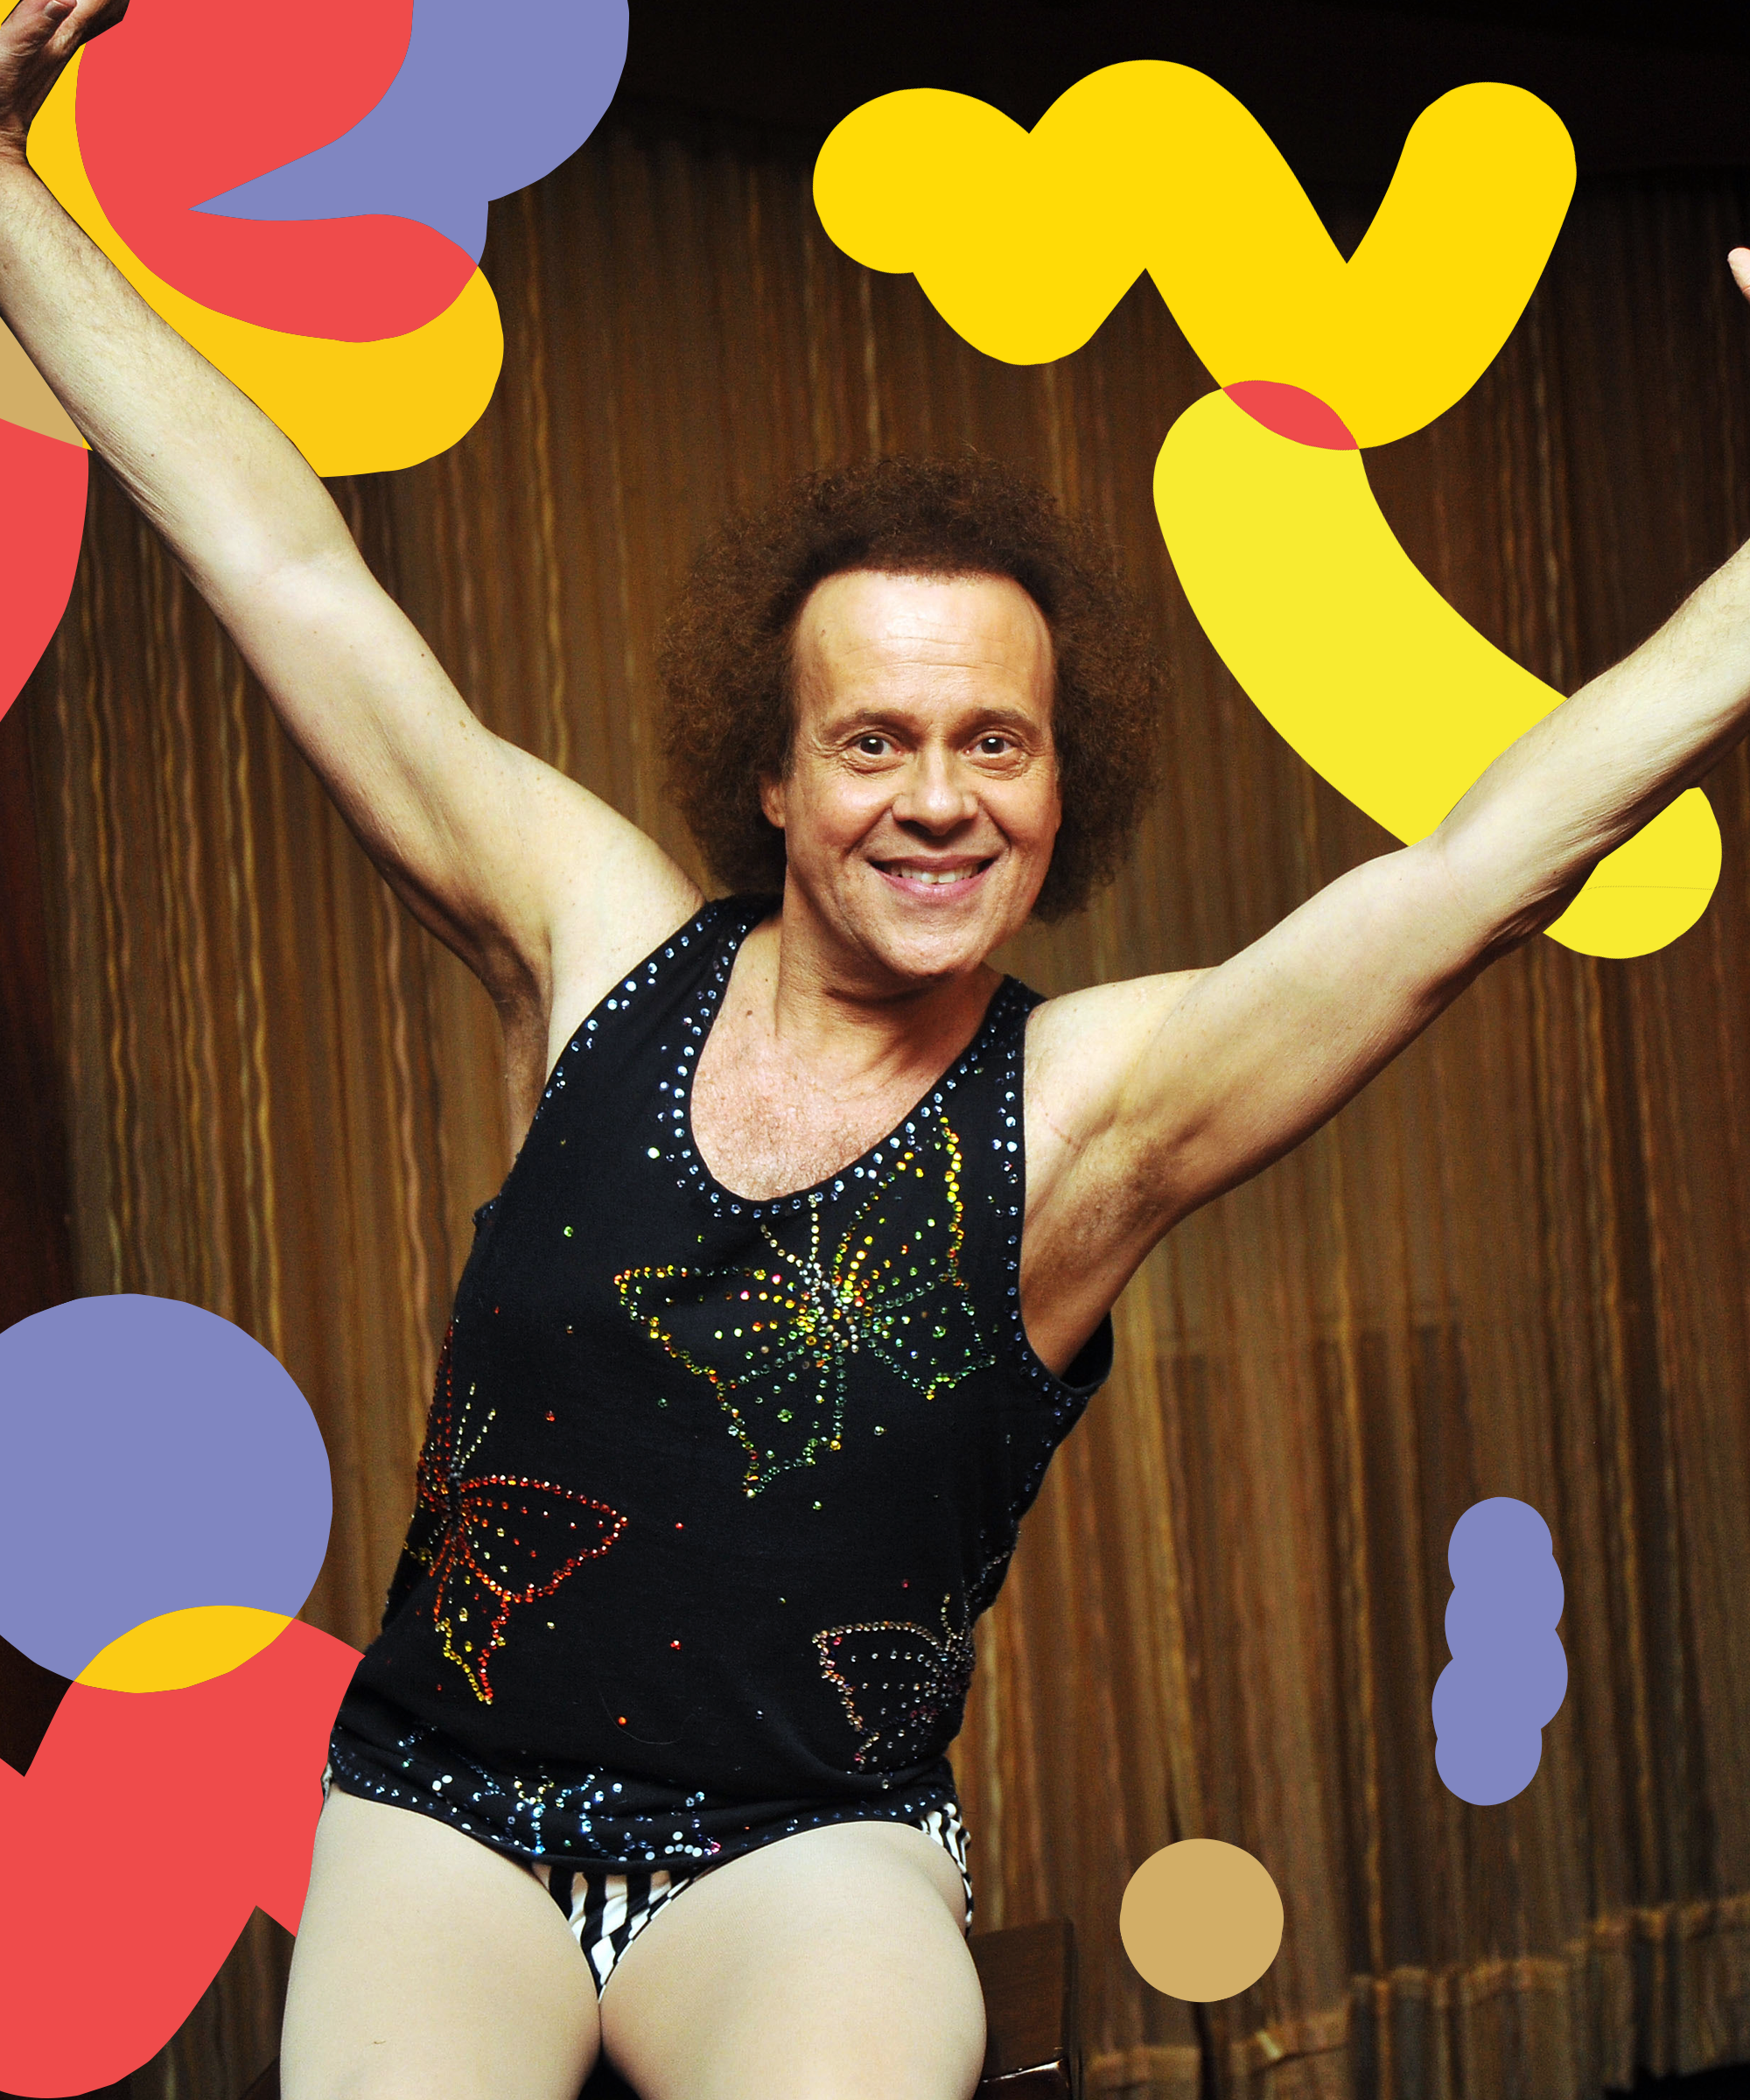 Los Angeles police tell People Richard Simmons is fine